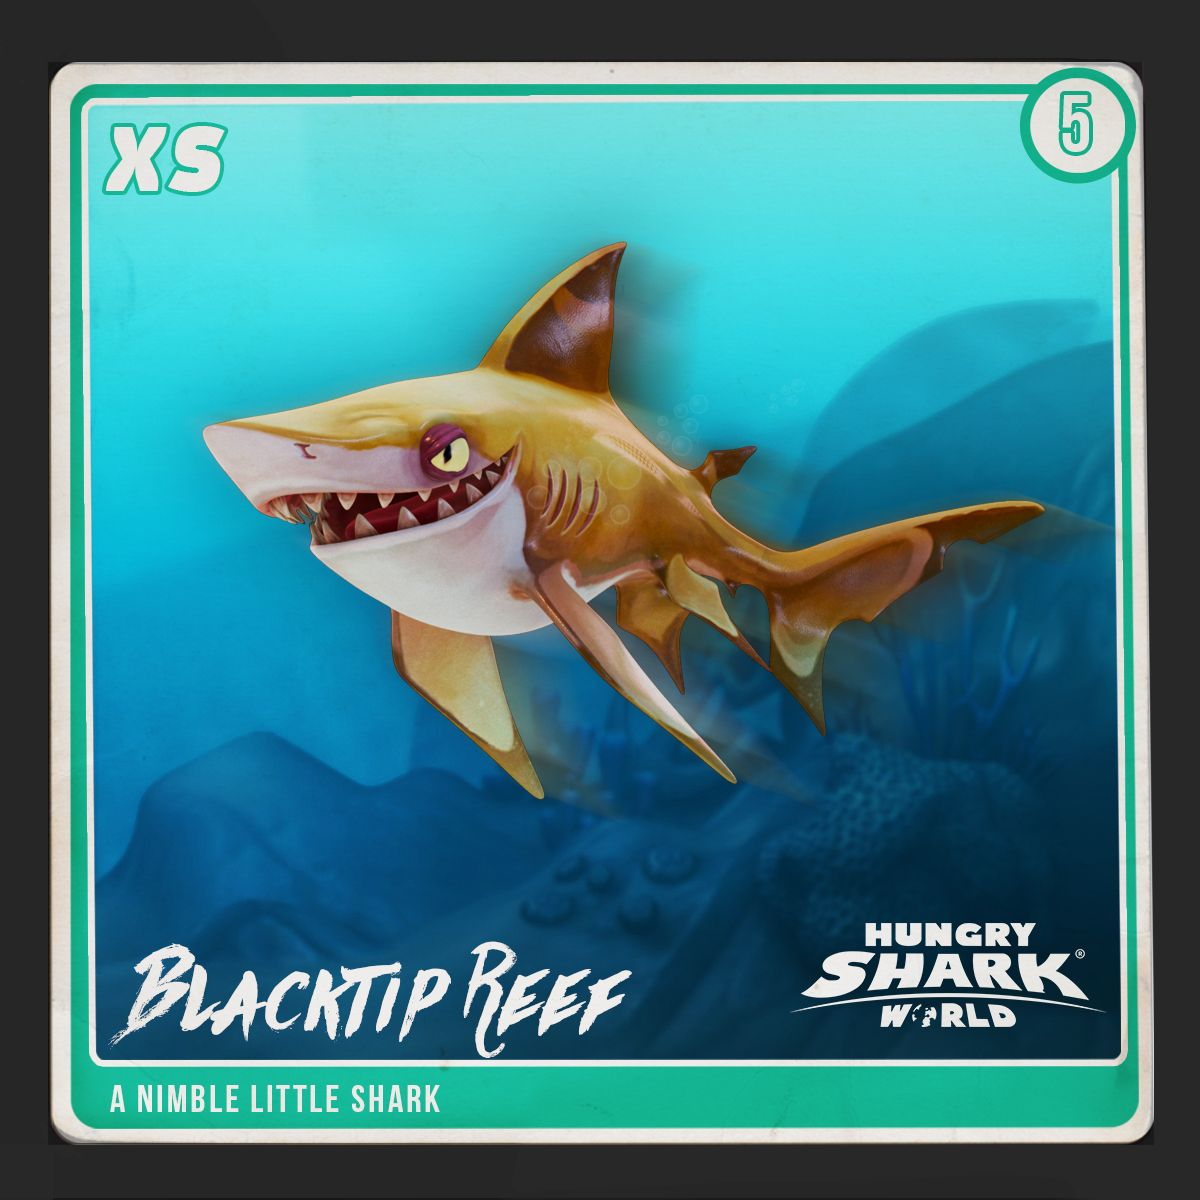 Blacktip reef shark hungry shark wiki fandom powered for Tiger strike fish game cheats